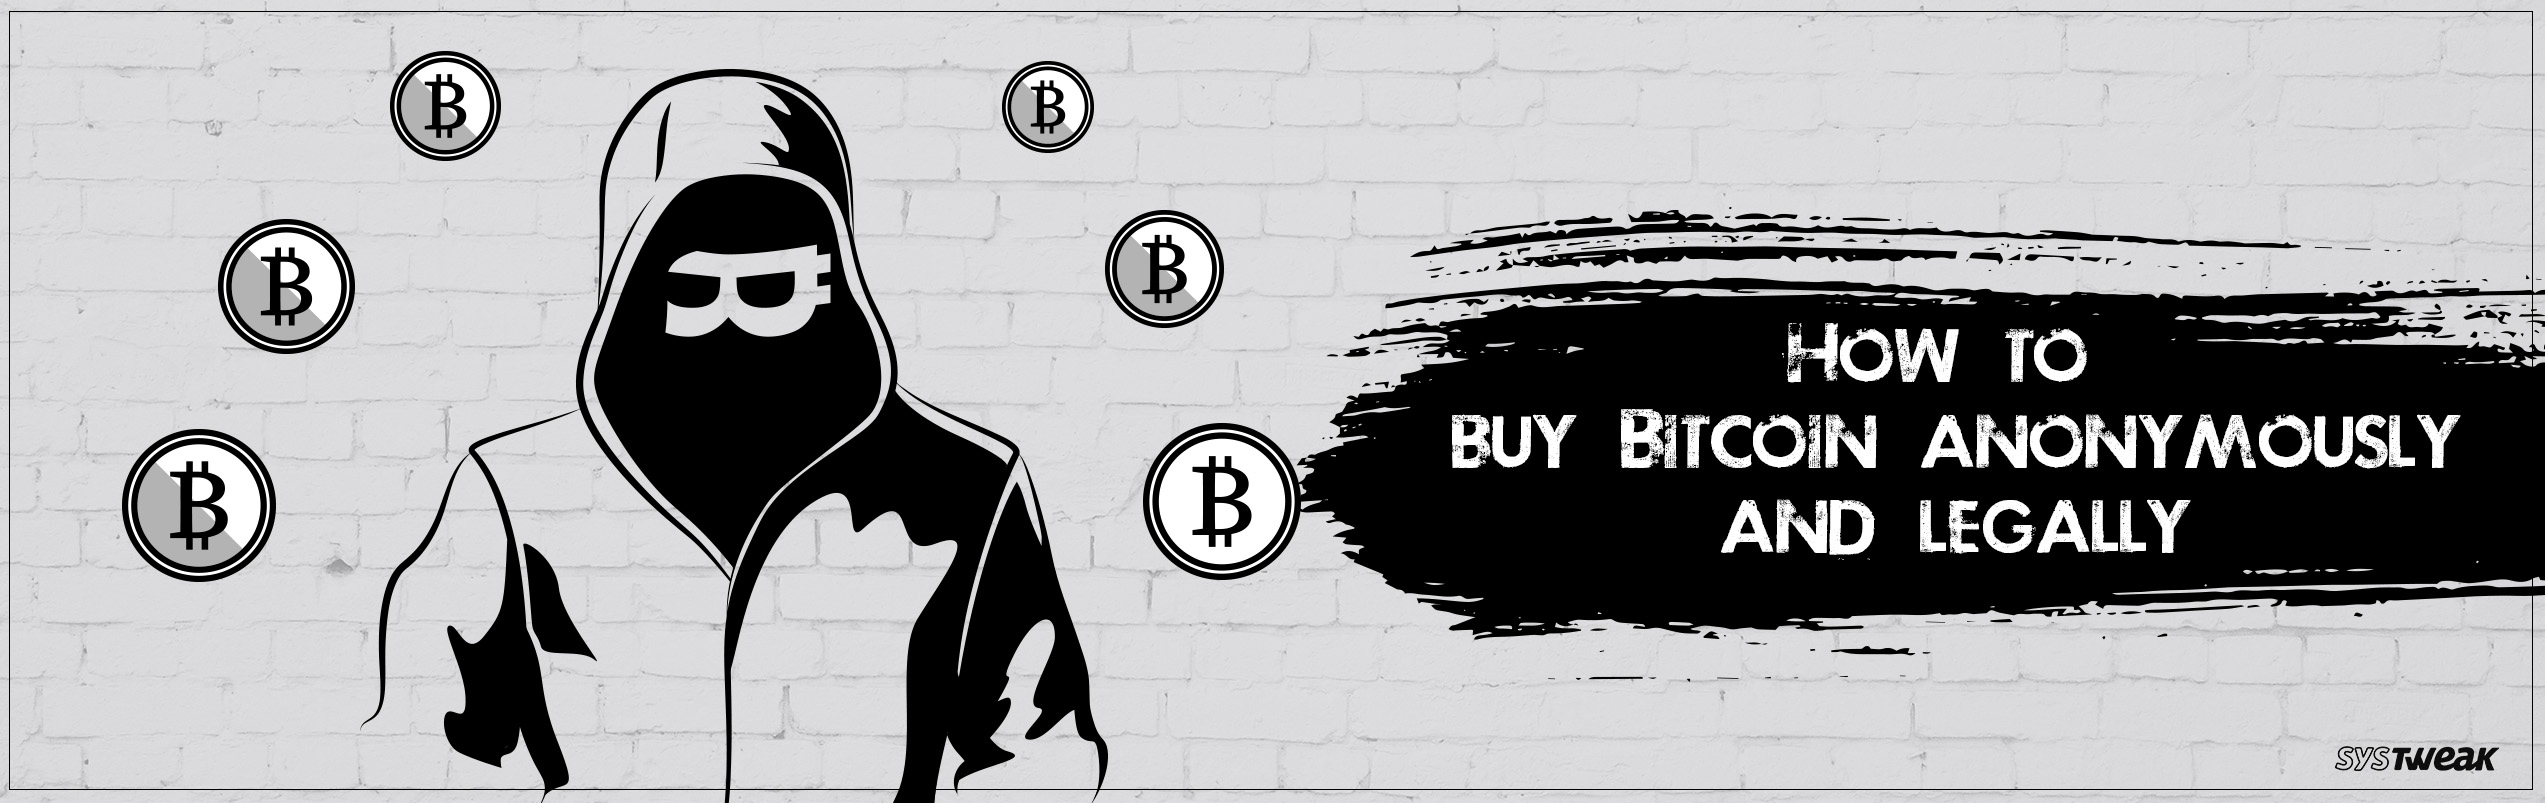 How to buy bitcoin anonymously and legally how to buy bitcoin anonymously and legallyg ccuart Gallery